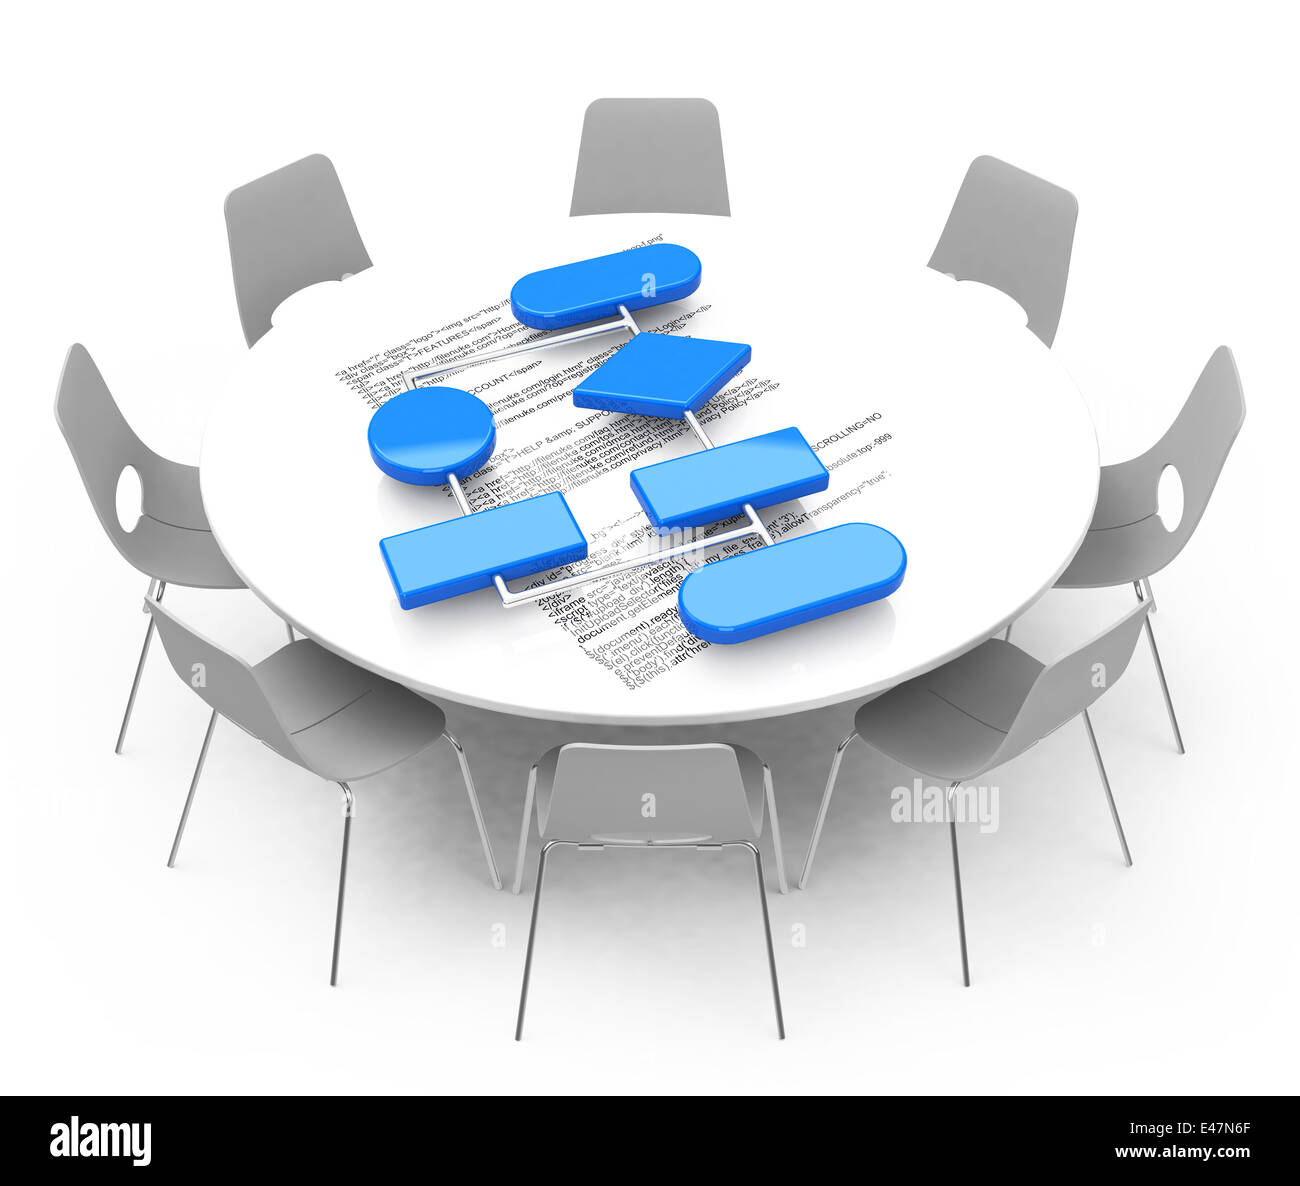 The flow chart analysis stock photo royalty free image 71470407 the flow chart analysis nvjuhfo Image collections